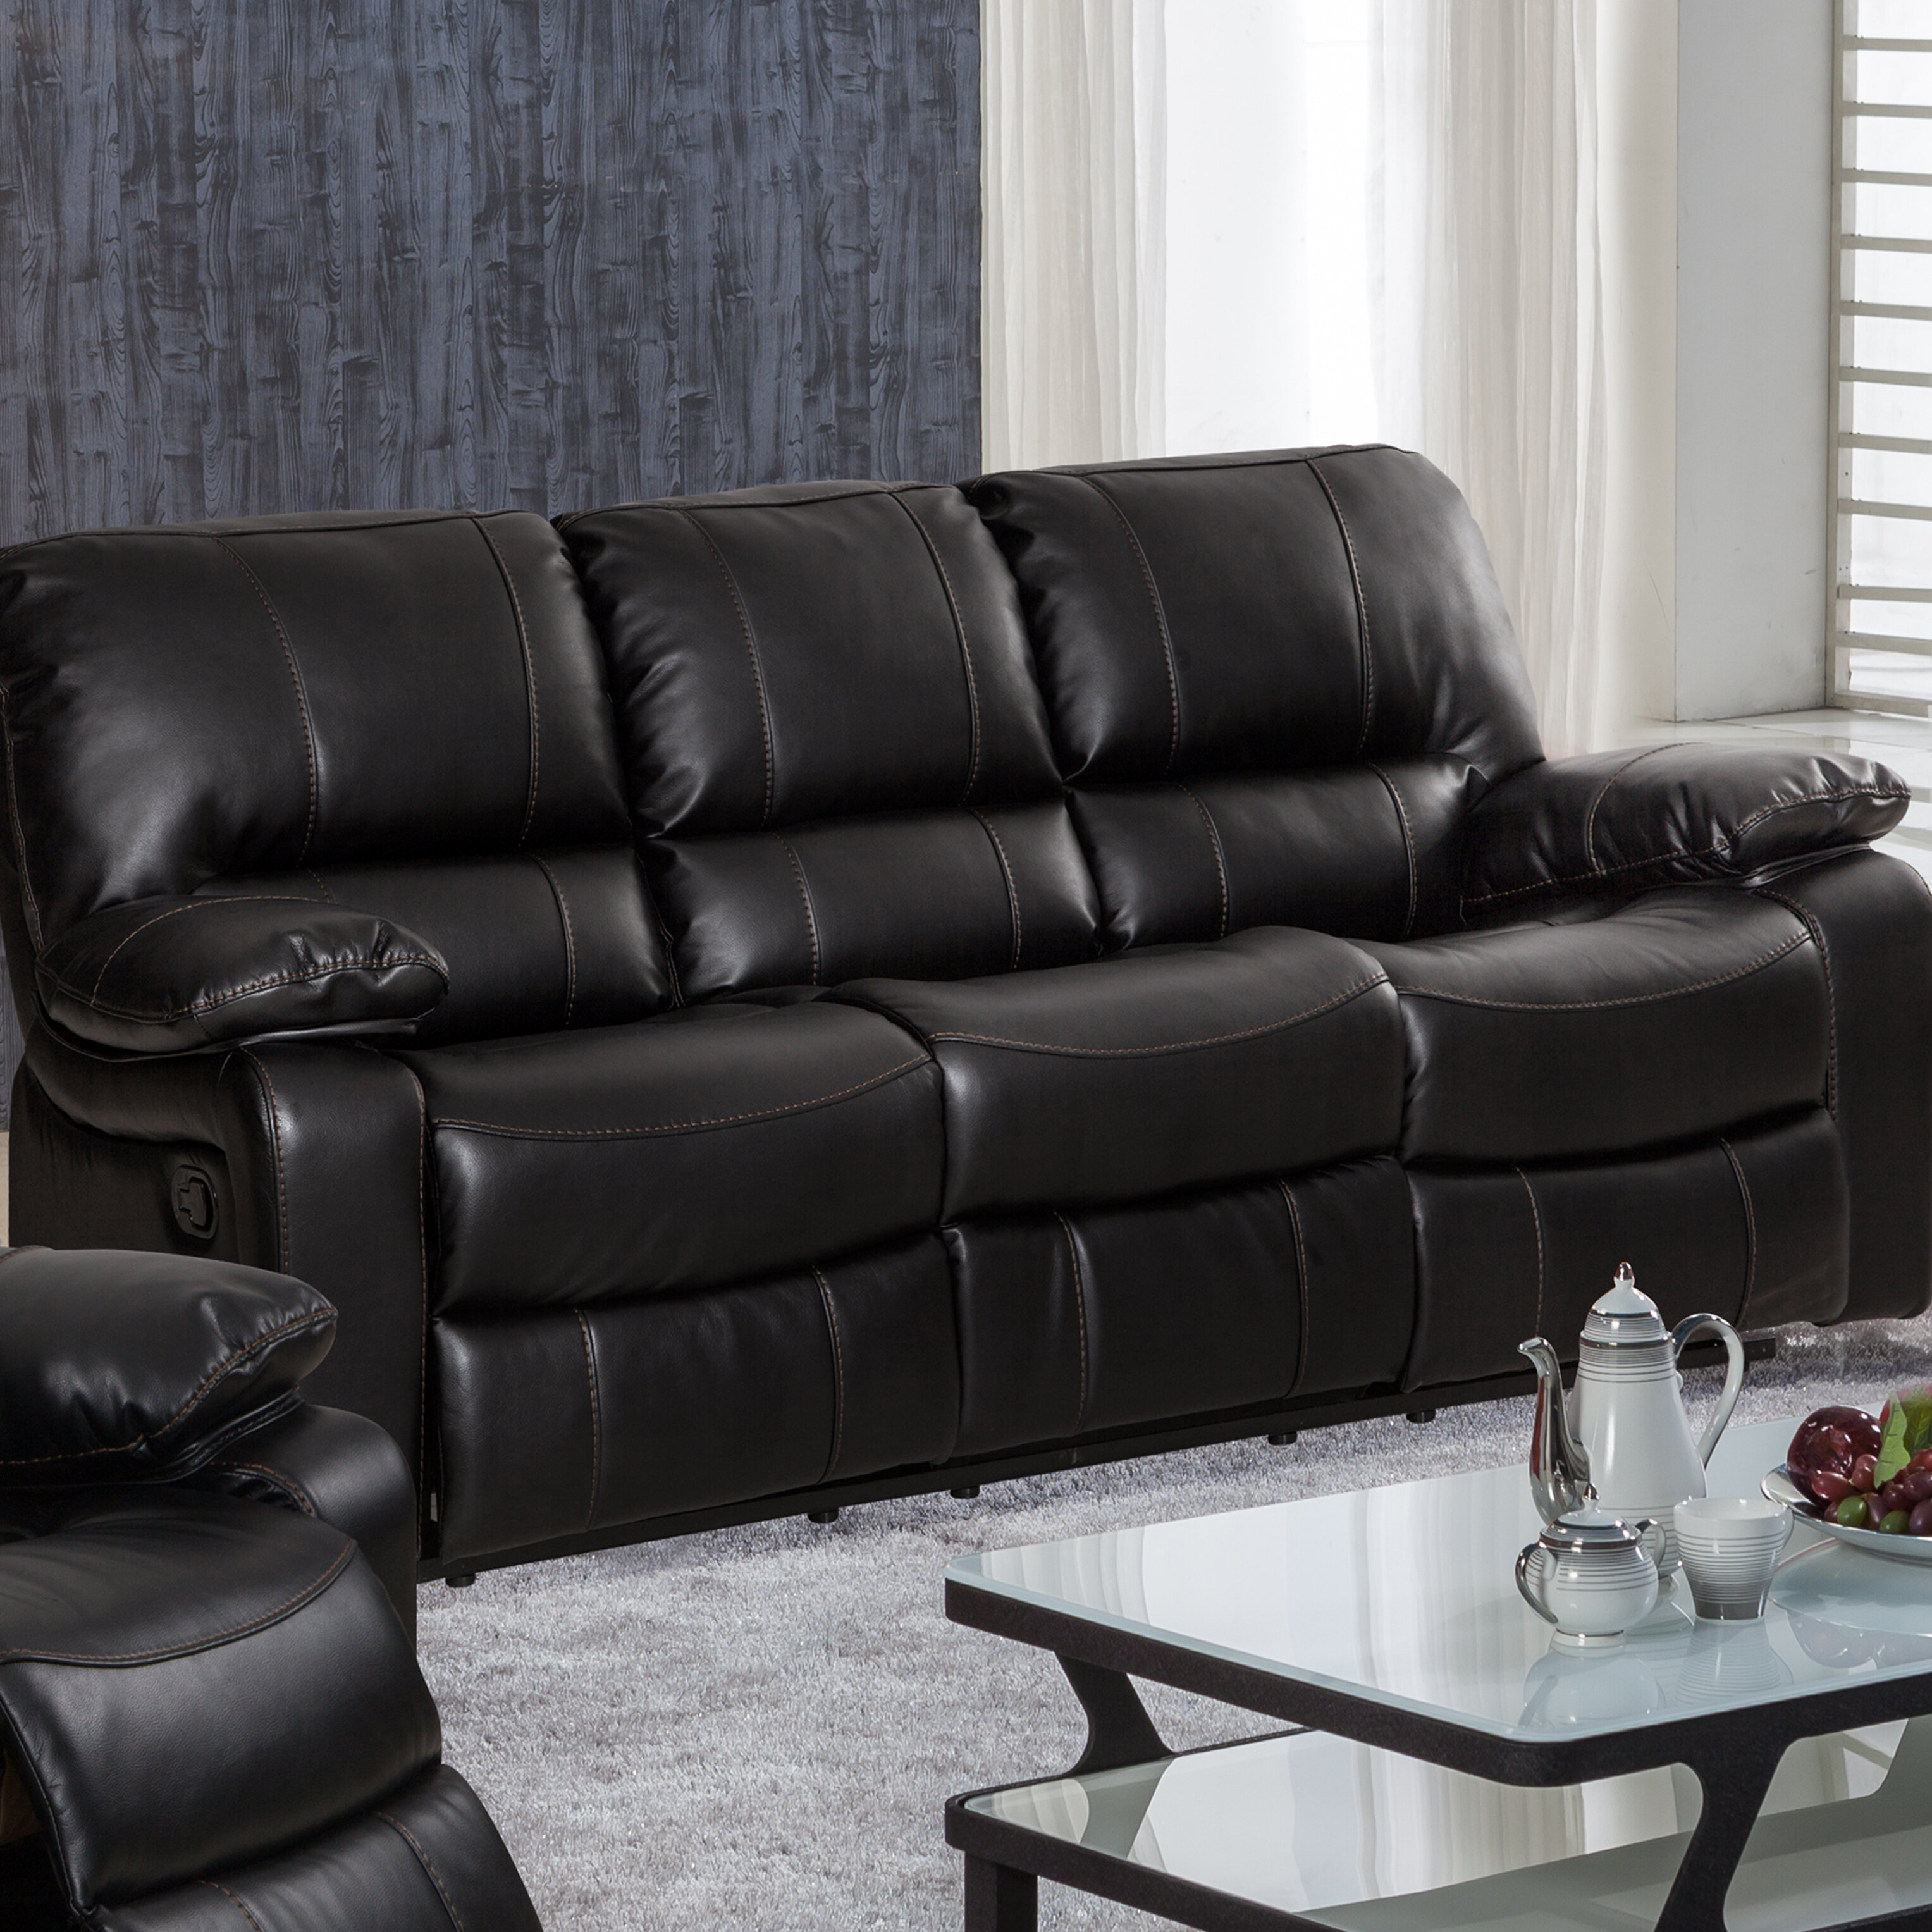 room piece sectional black for abbyson living complaints london cosco leather luxury furniture elegant grey decor design